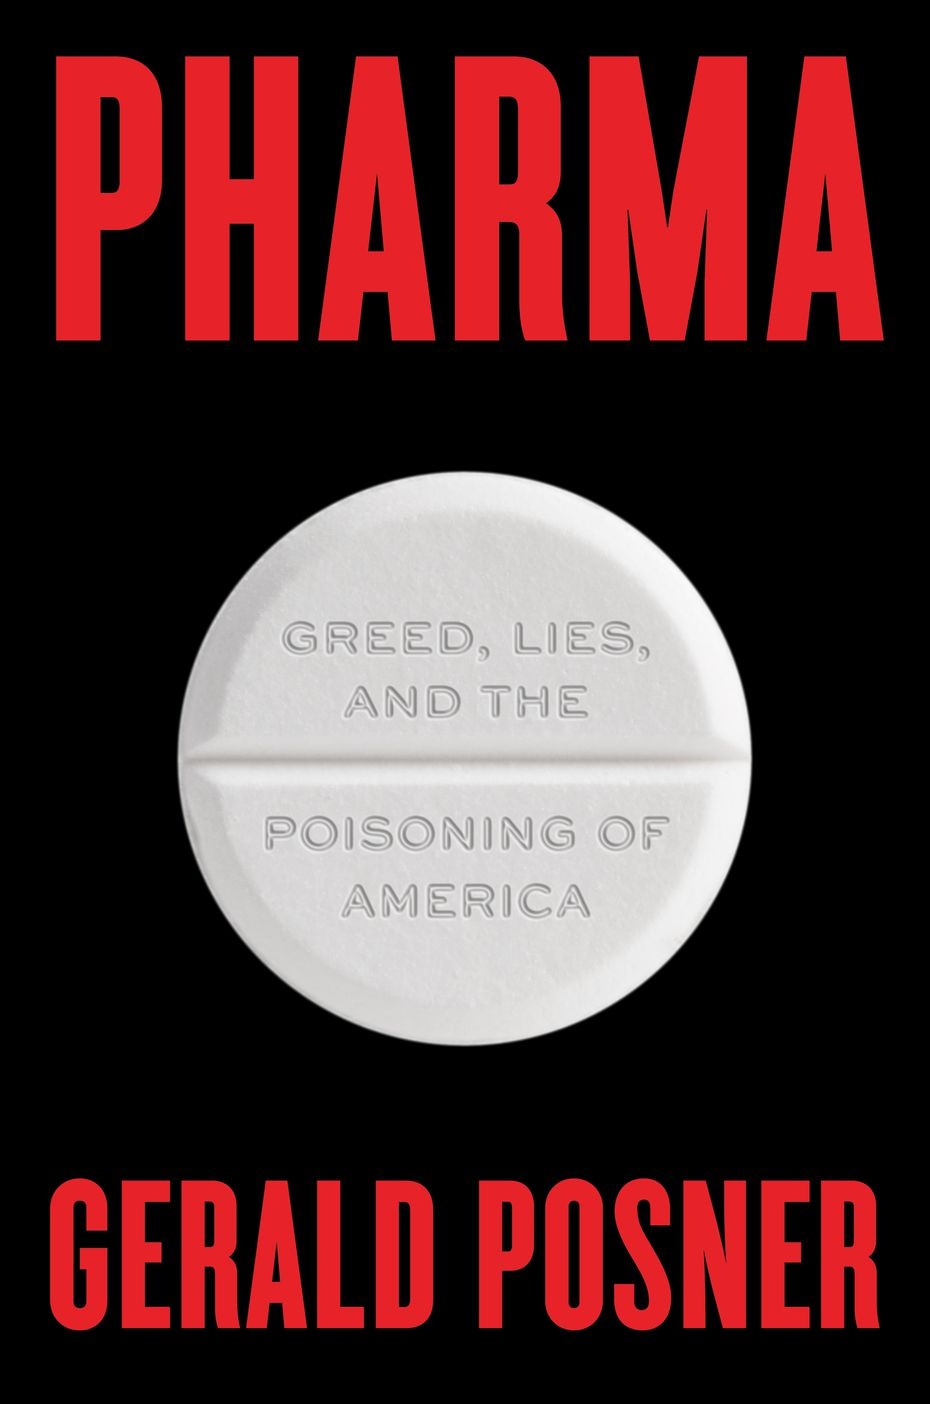 The cover of Gerald Posner's book, 'Pharma,' which is being released on Tuesday, March 11, 2020.